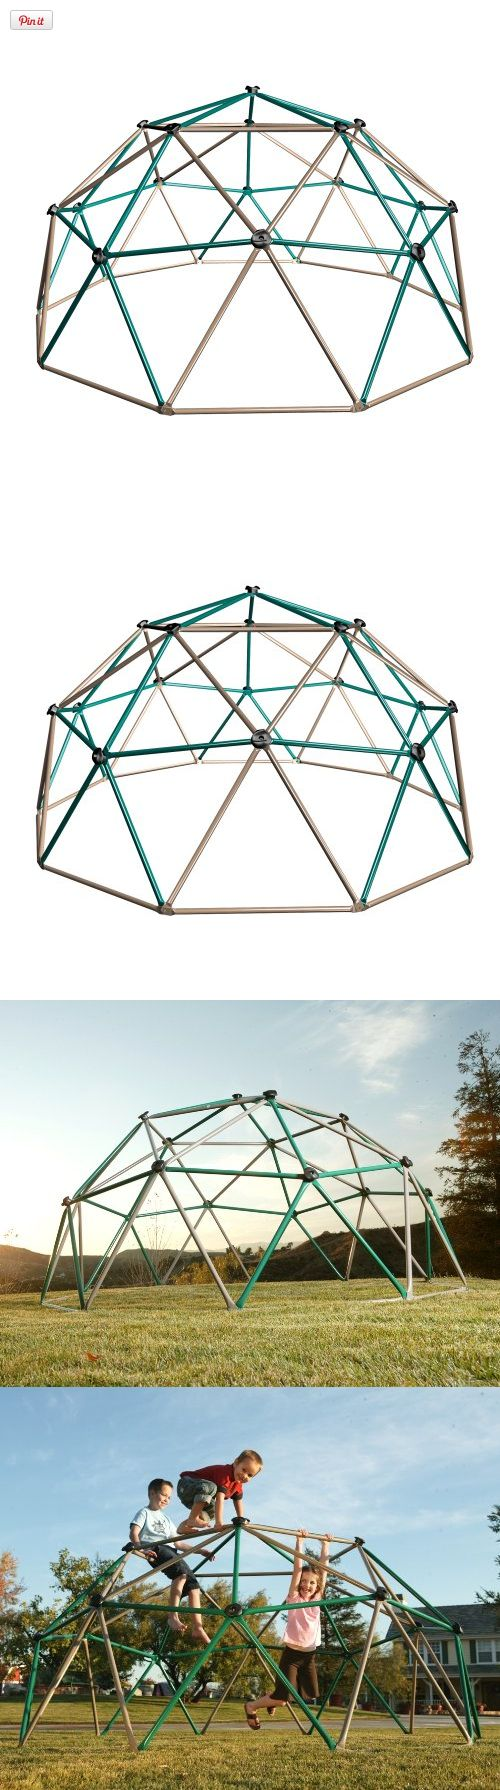 35 best playground equipment images on pinterest playgrounds